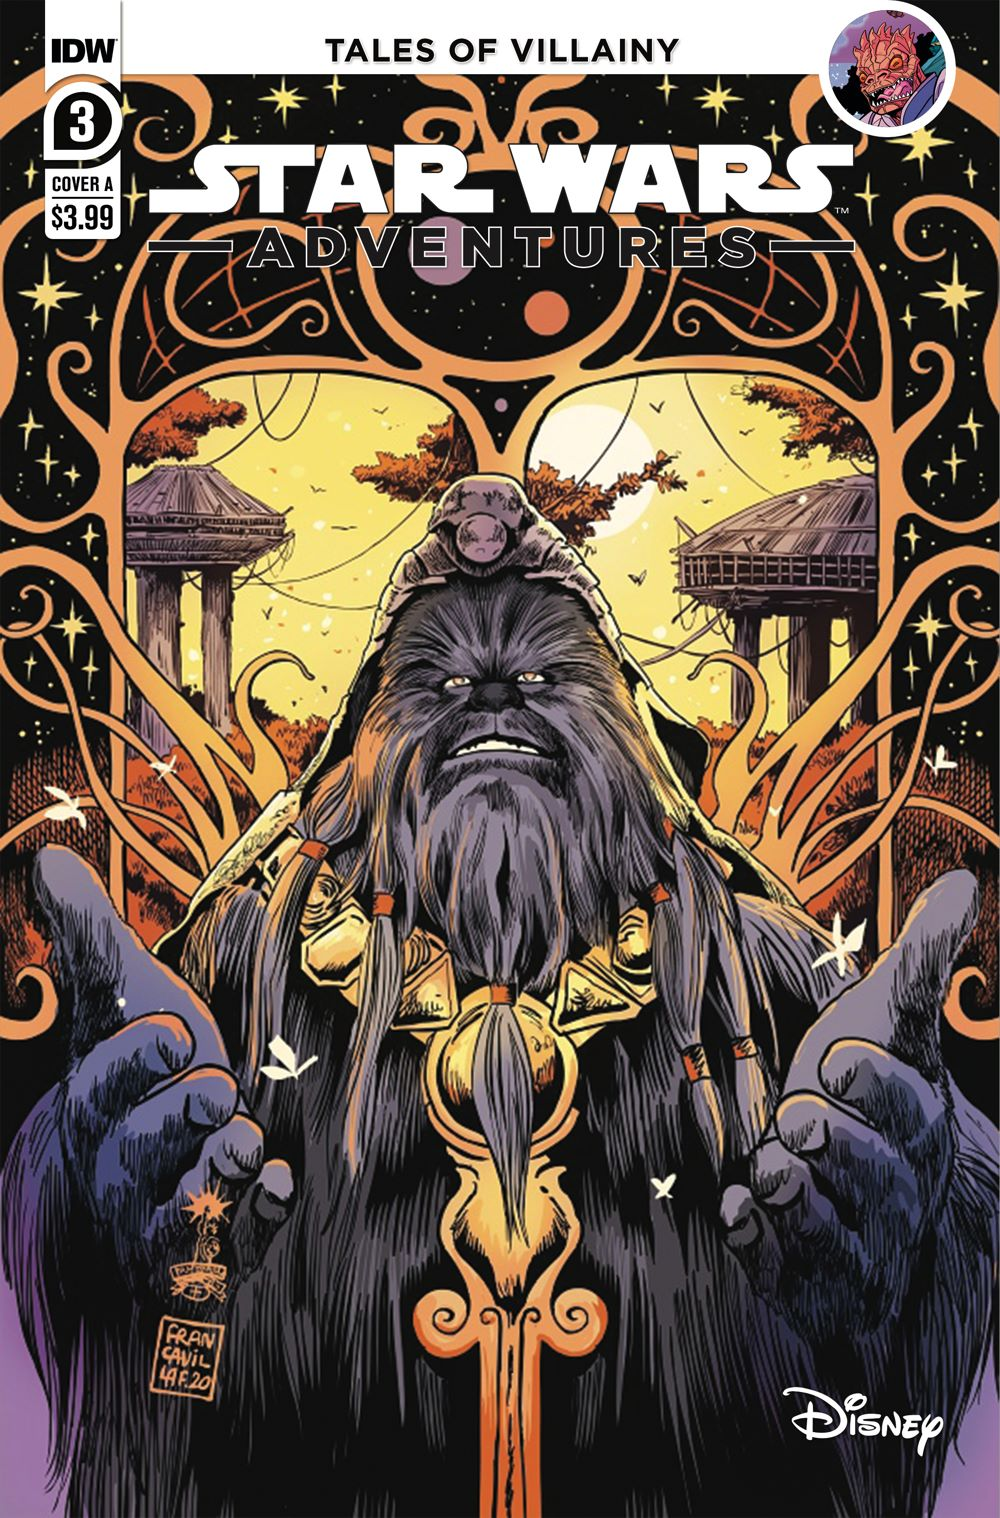 StarWars_03-coverA ComicList Previews: STAR WARS ADVENTURES VOLUME 2 #3